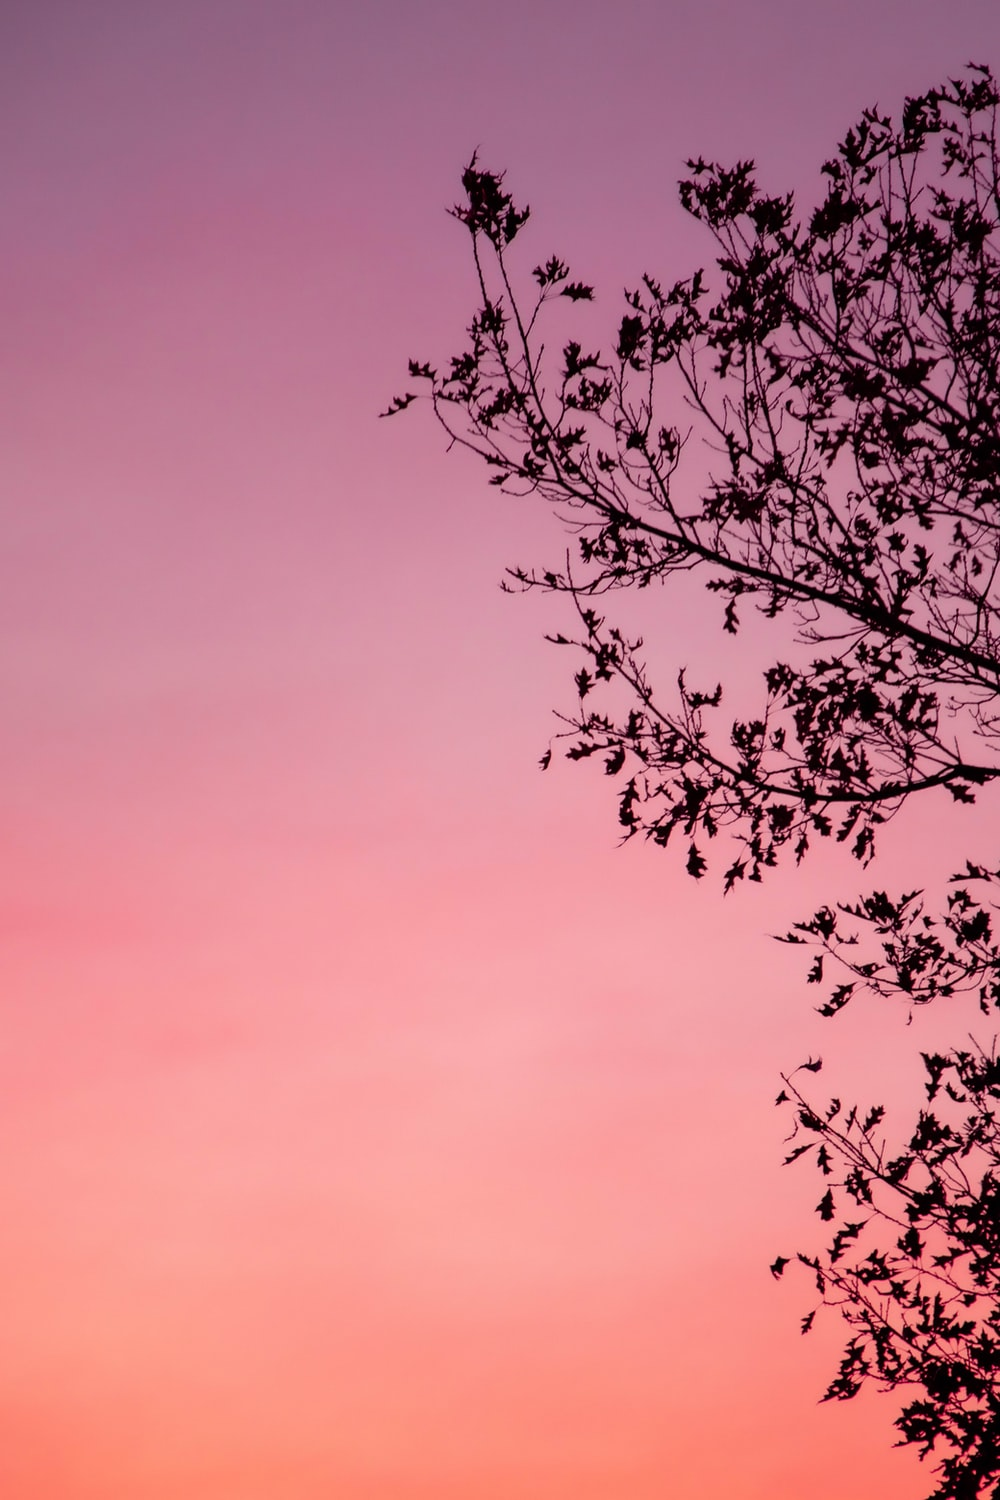 silhouette of tree during golden hour